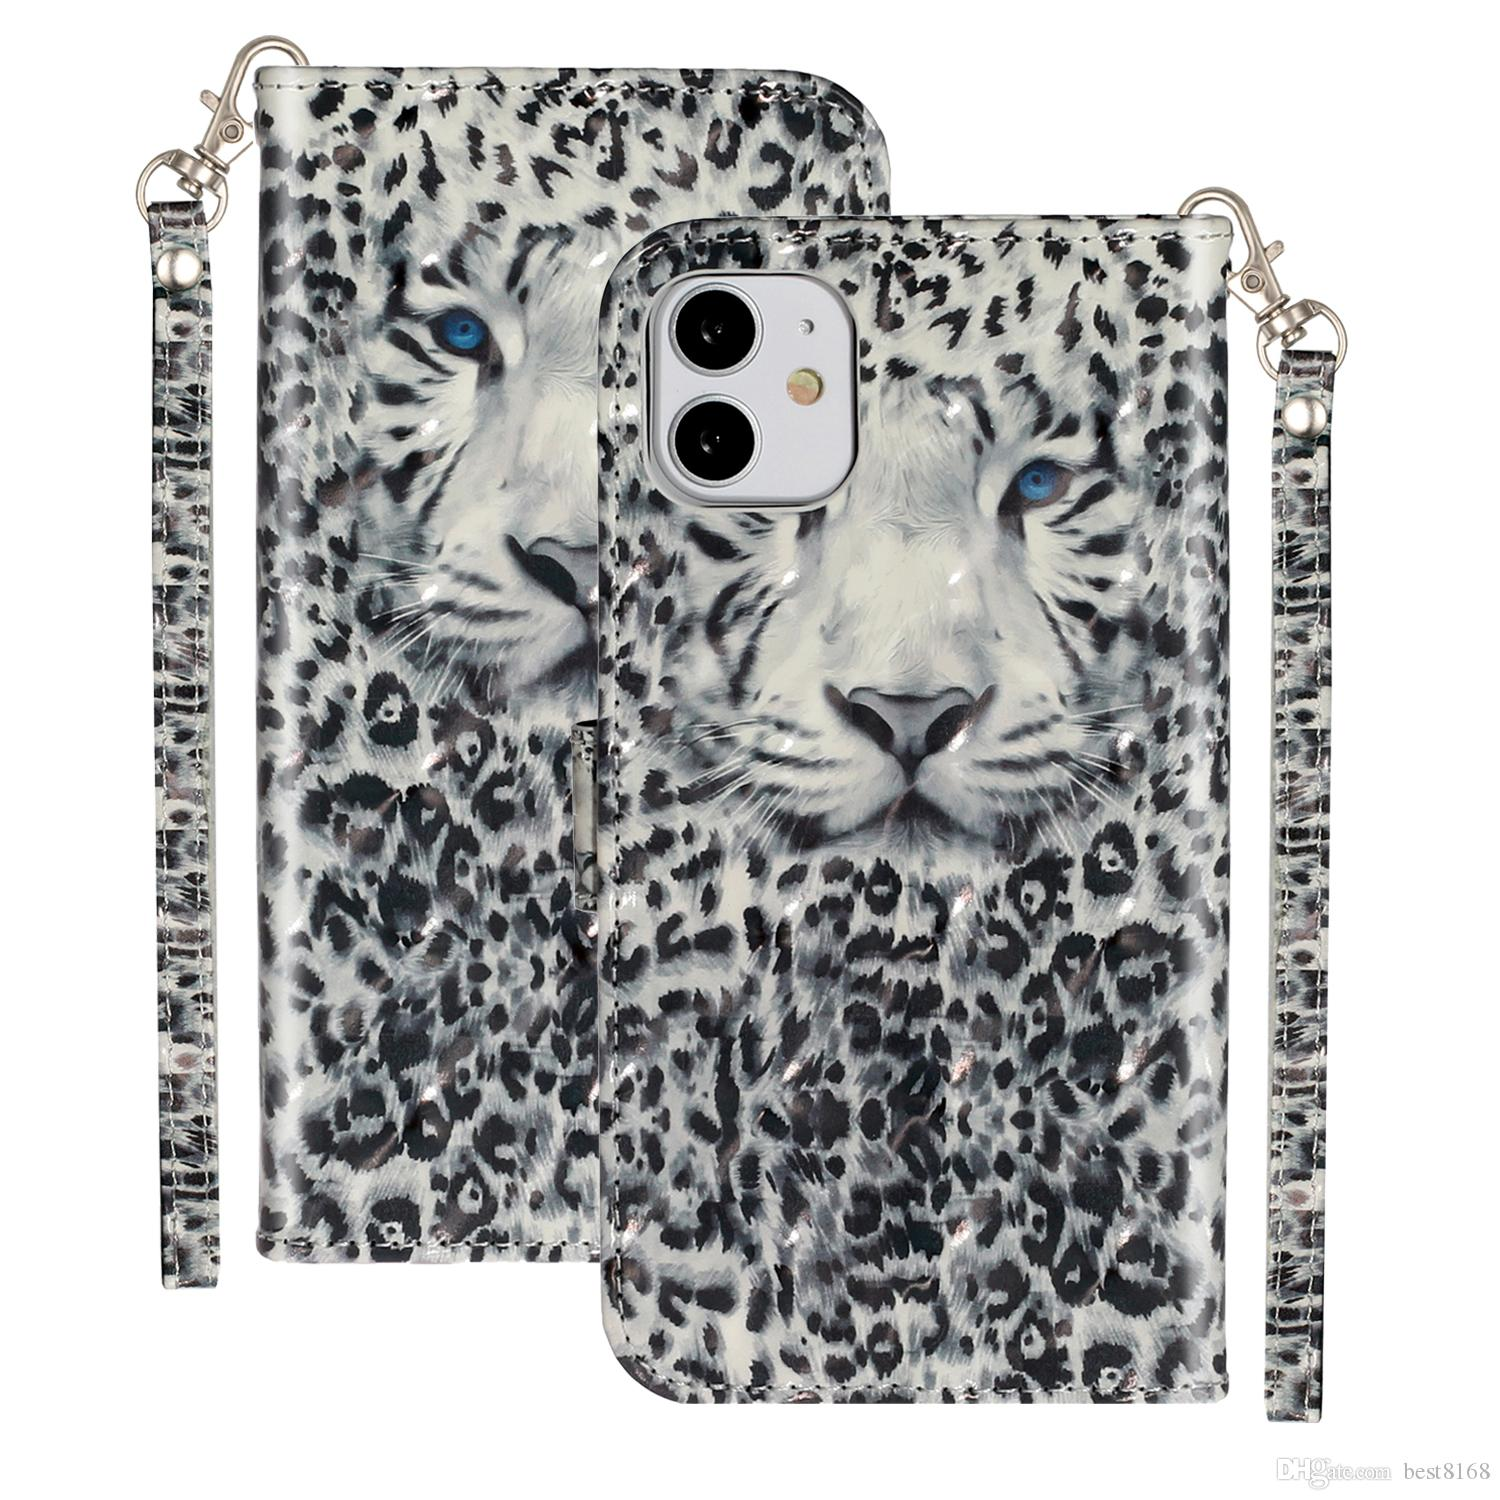 3D Leopard Leather Wallet Case For Iphone 12 11 Pro Max XR XS MAX 8 7 6 5 Wolf Cat Marble Flower Flip Cover Luxury Card Slot ID Holder Pouch